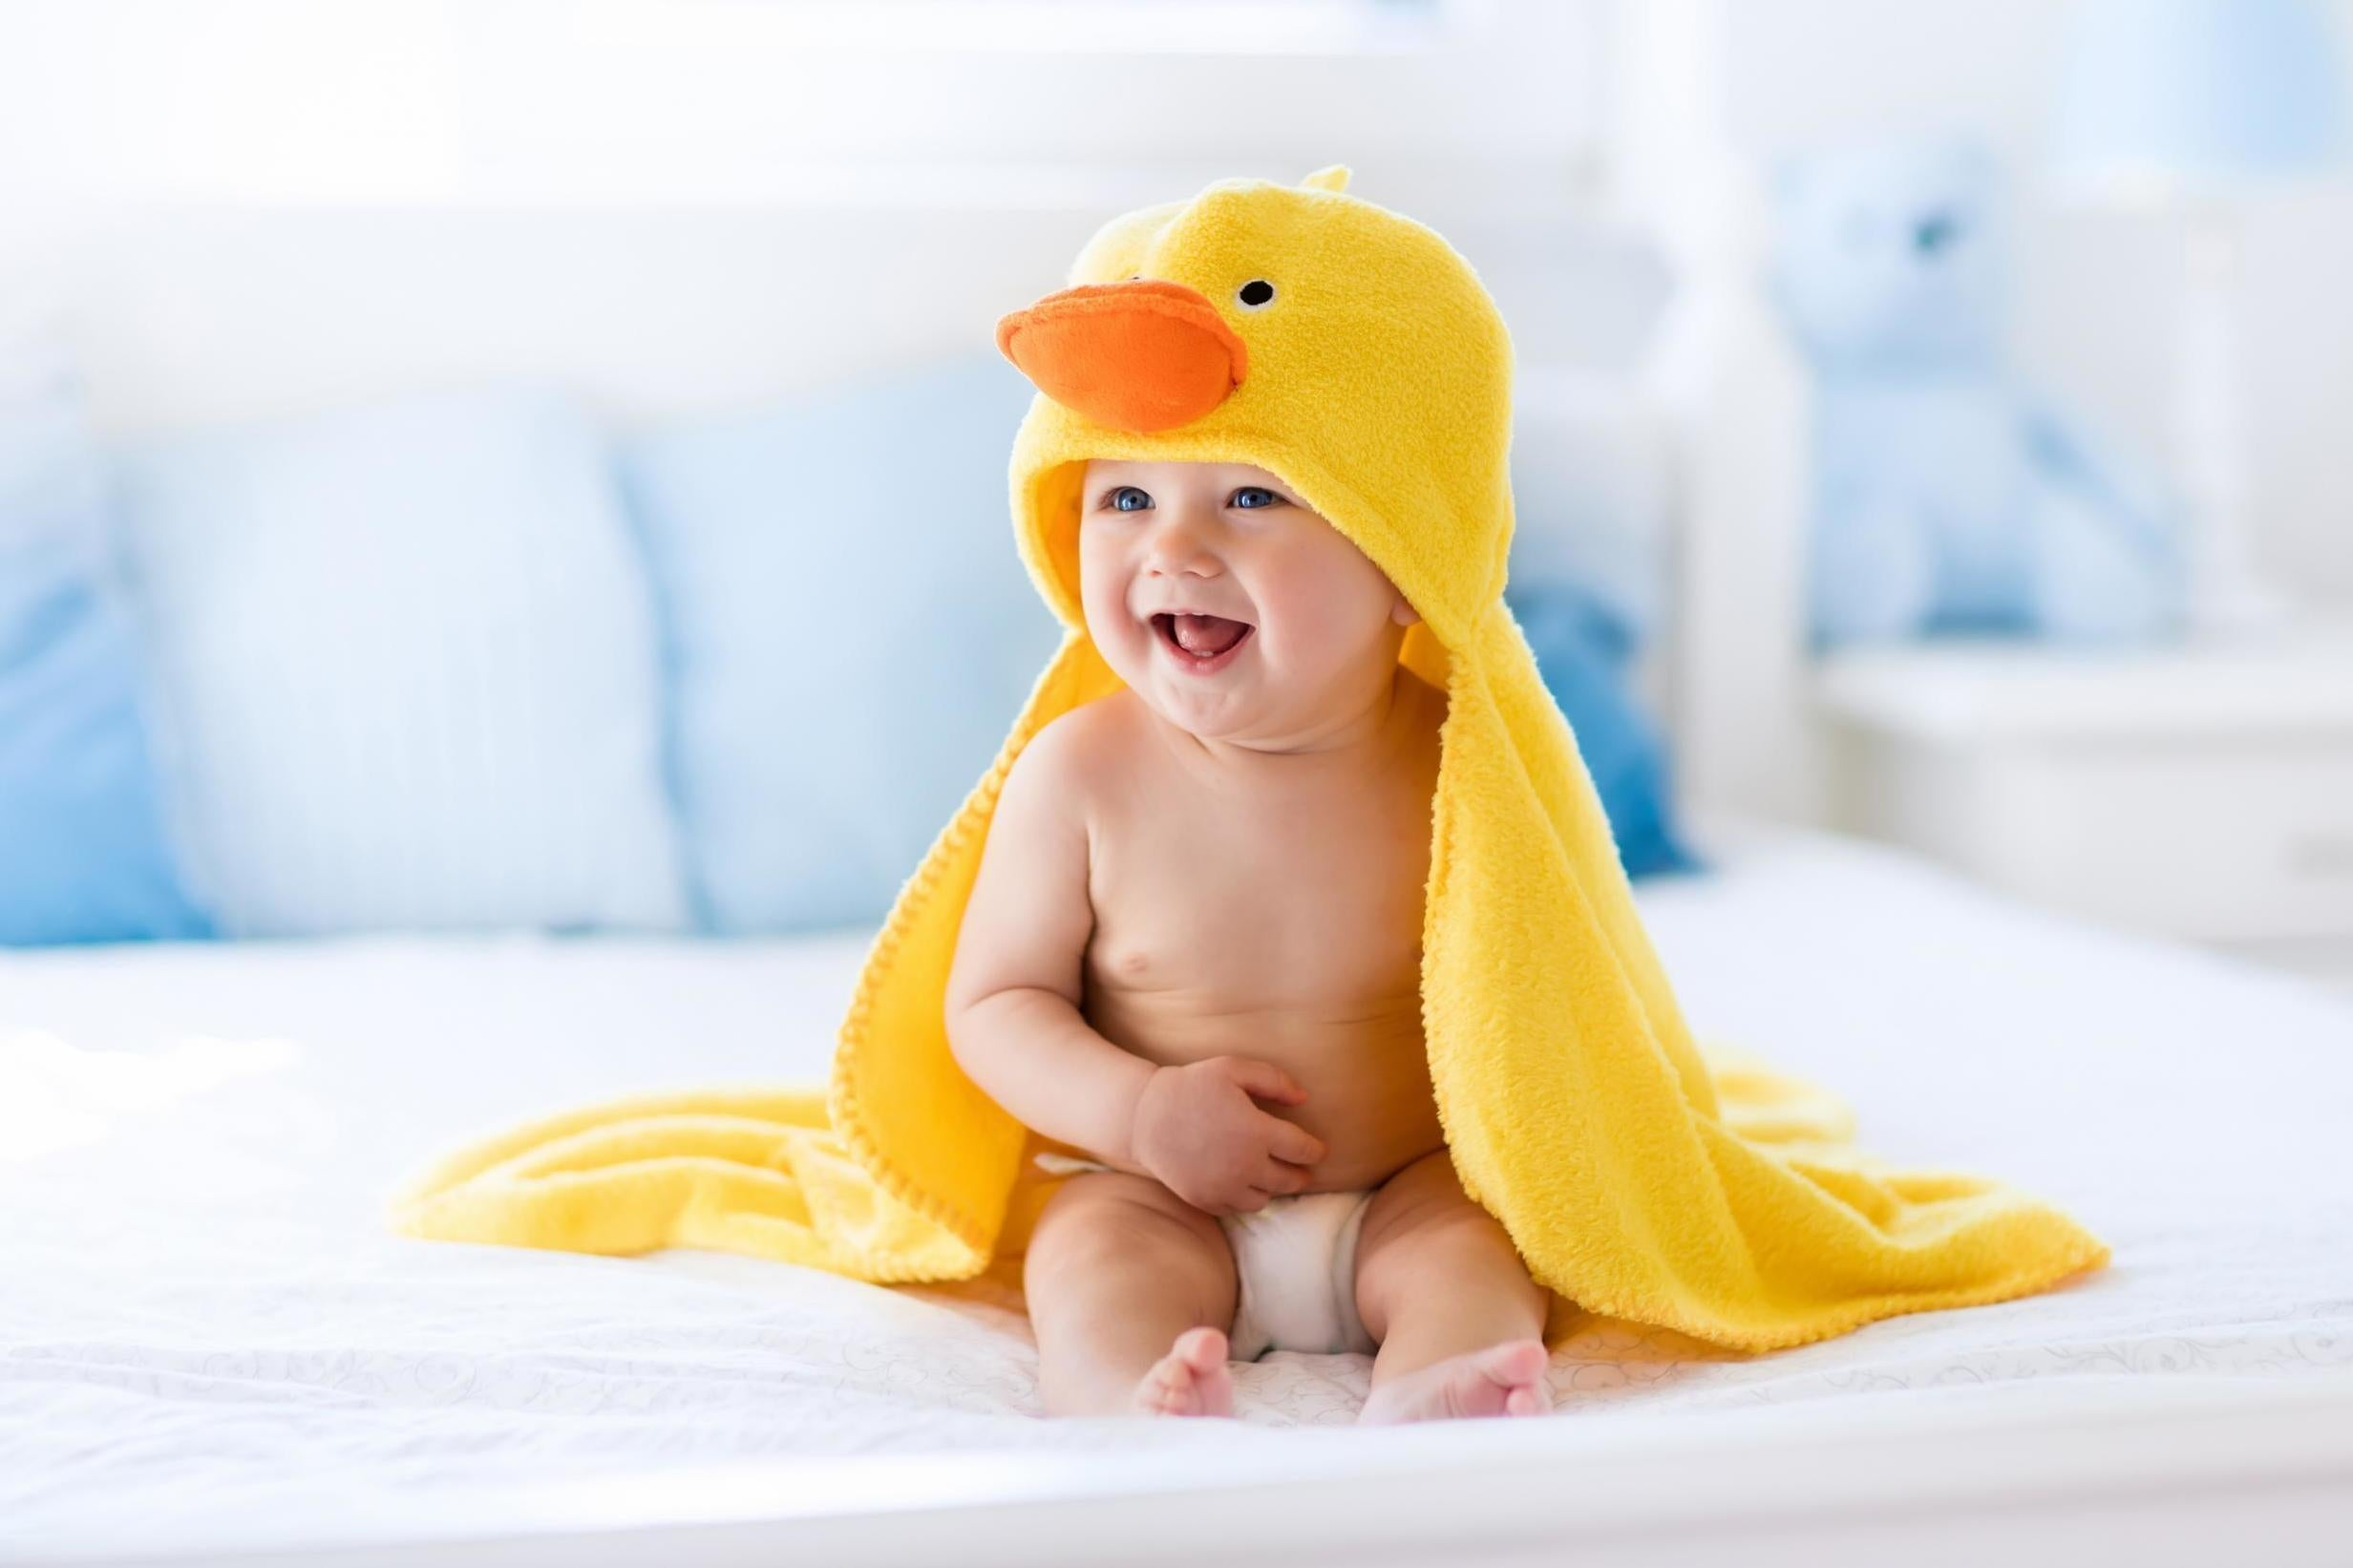 The most-popular US baby names of 2019 so far